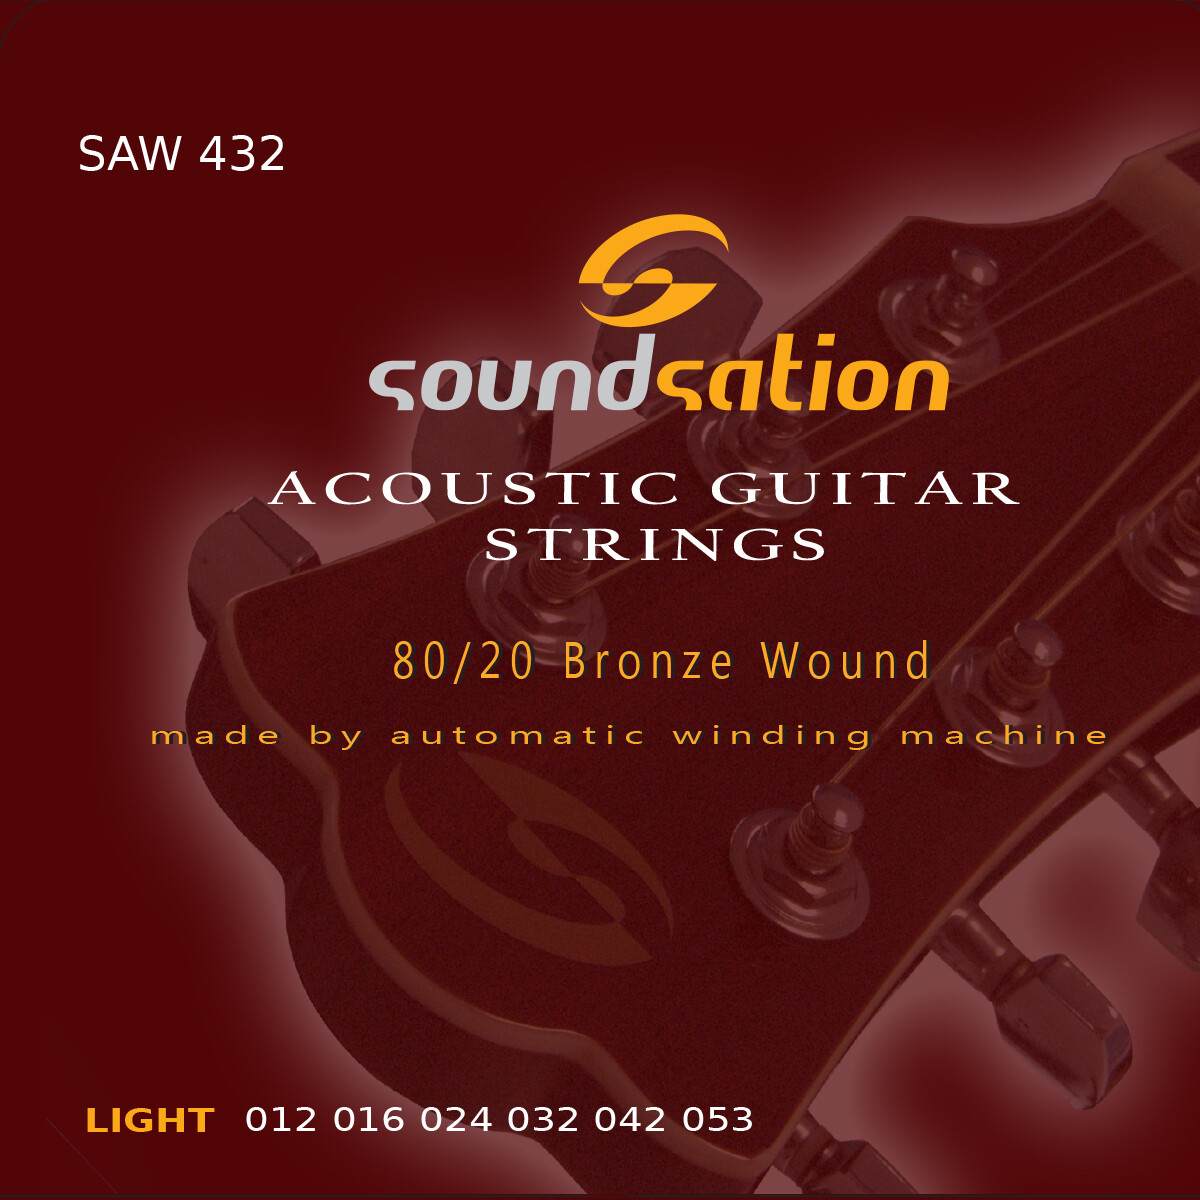 Acoustic Guitar String  light SAW432